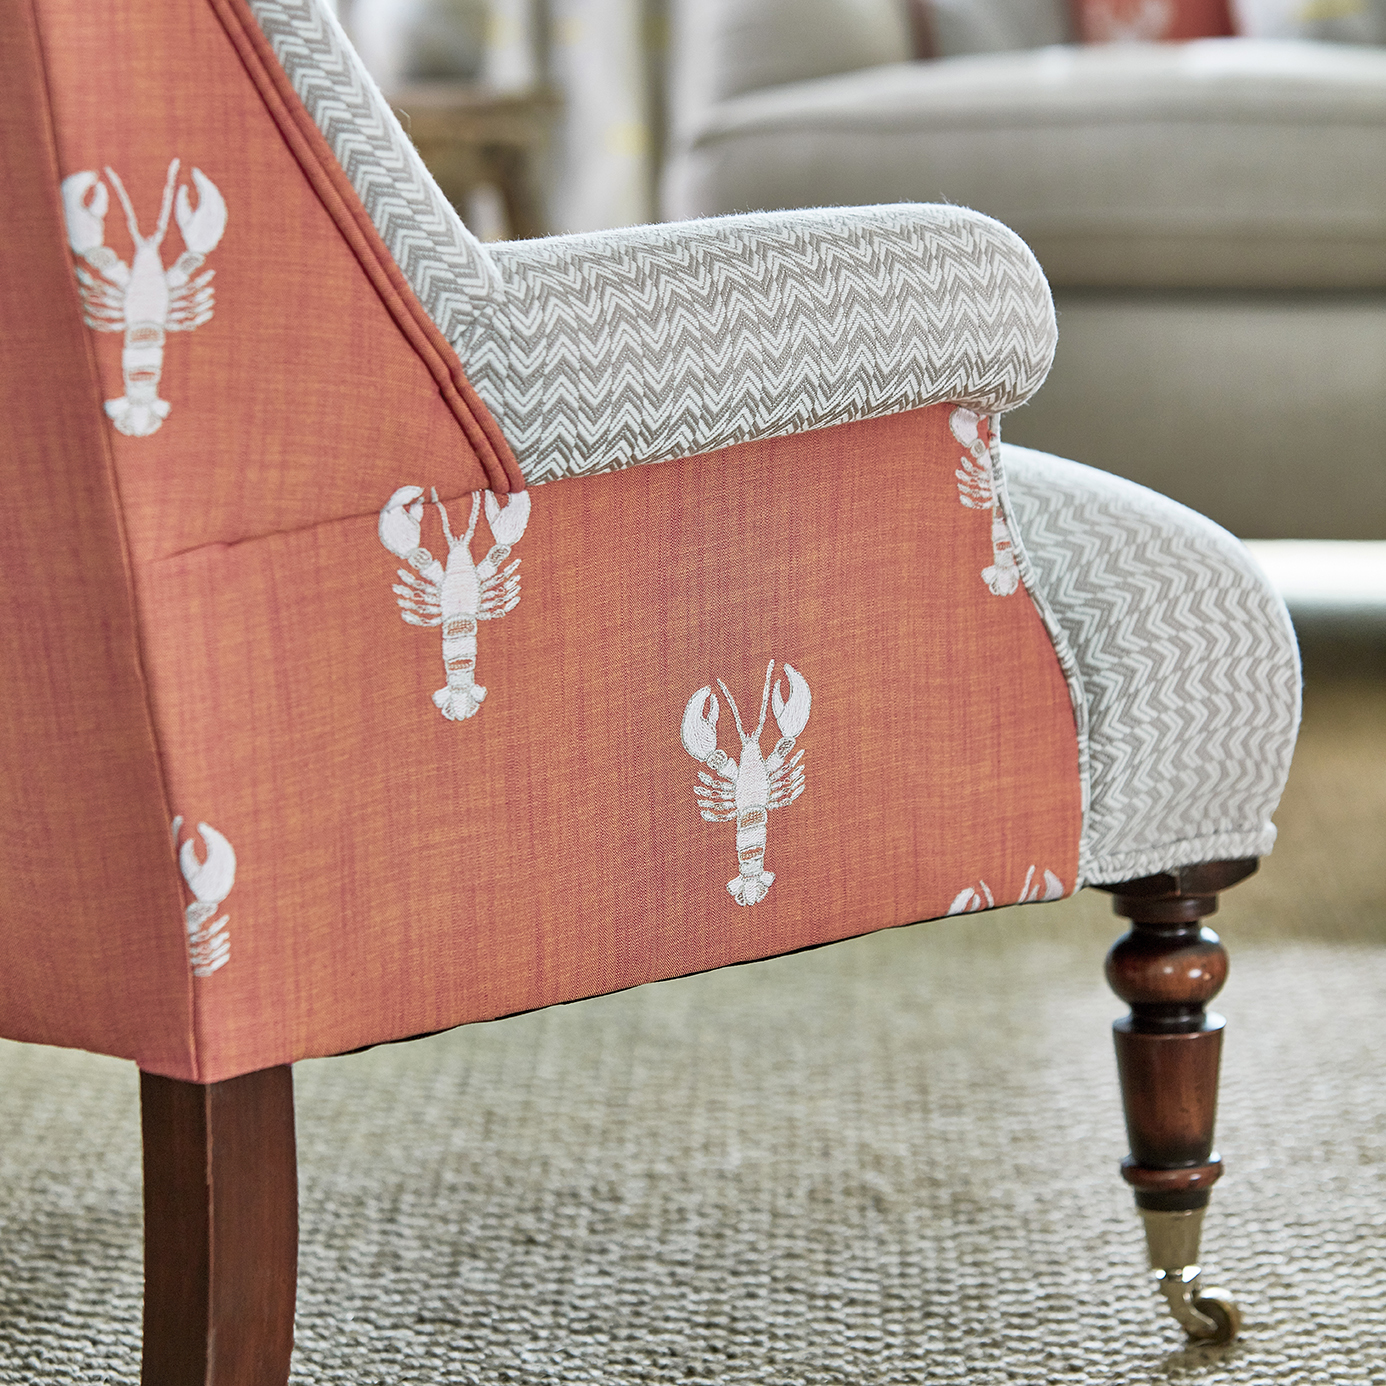 Cromer Embroidery by HOM